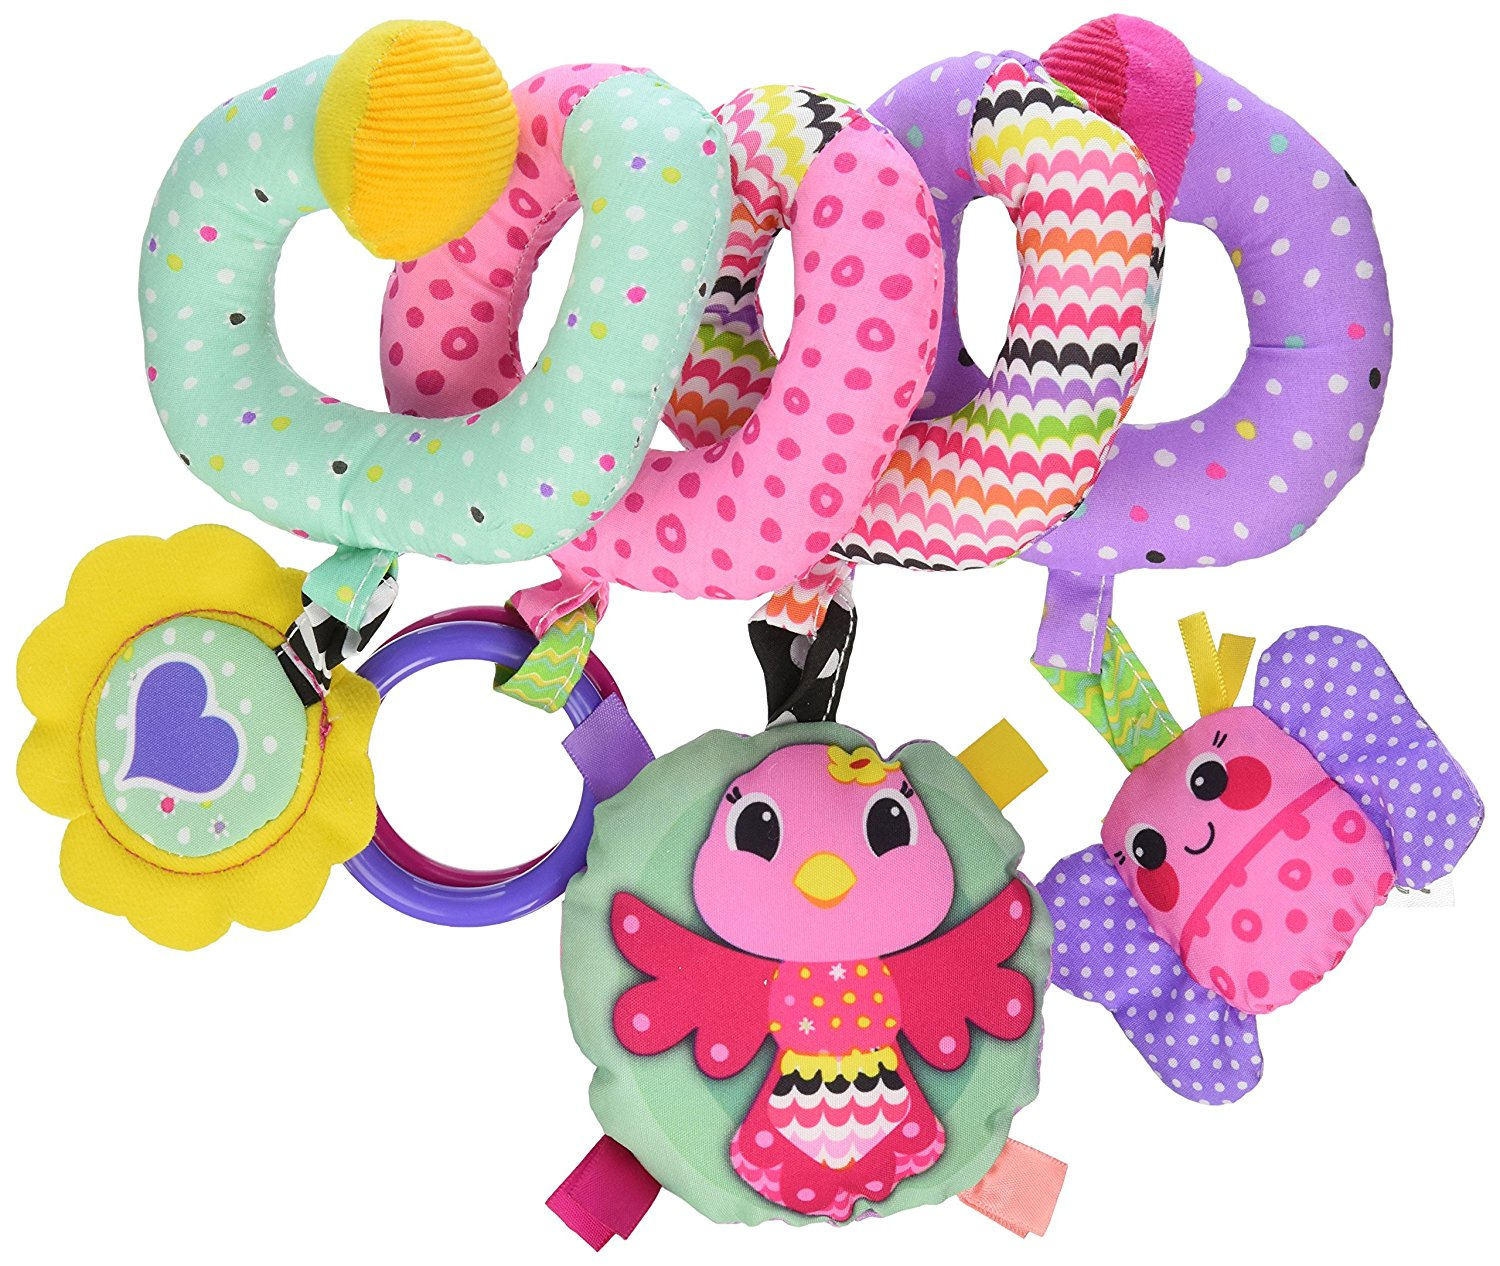 Spiral Activity Toy, Pink, Includes peek n' see mirror,2-clacker rings, bird rattle,... by Infantino